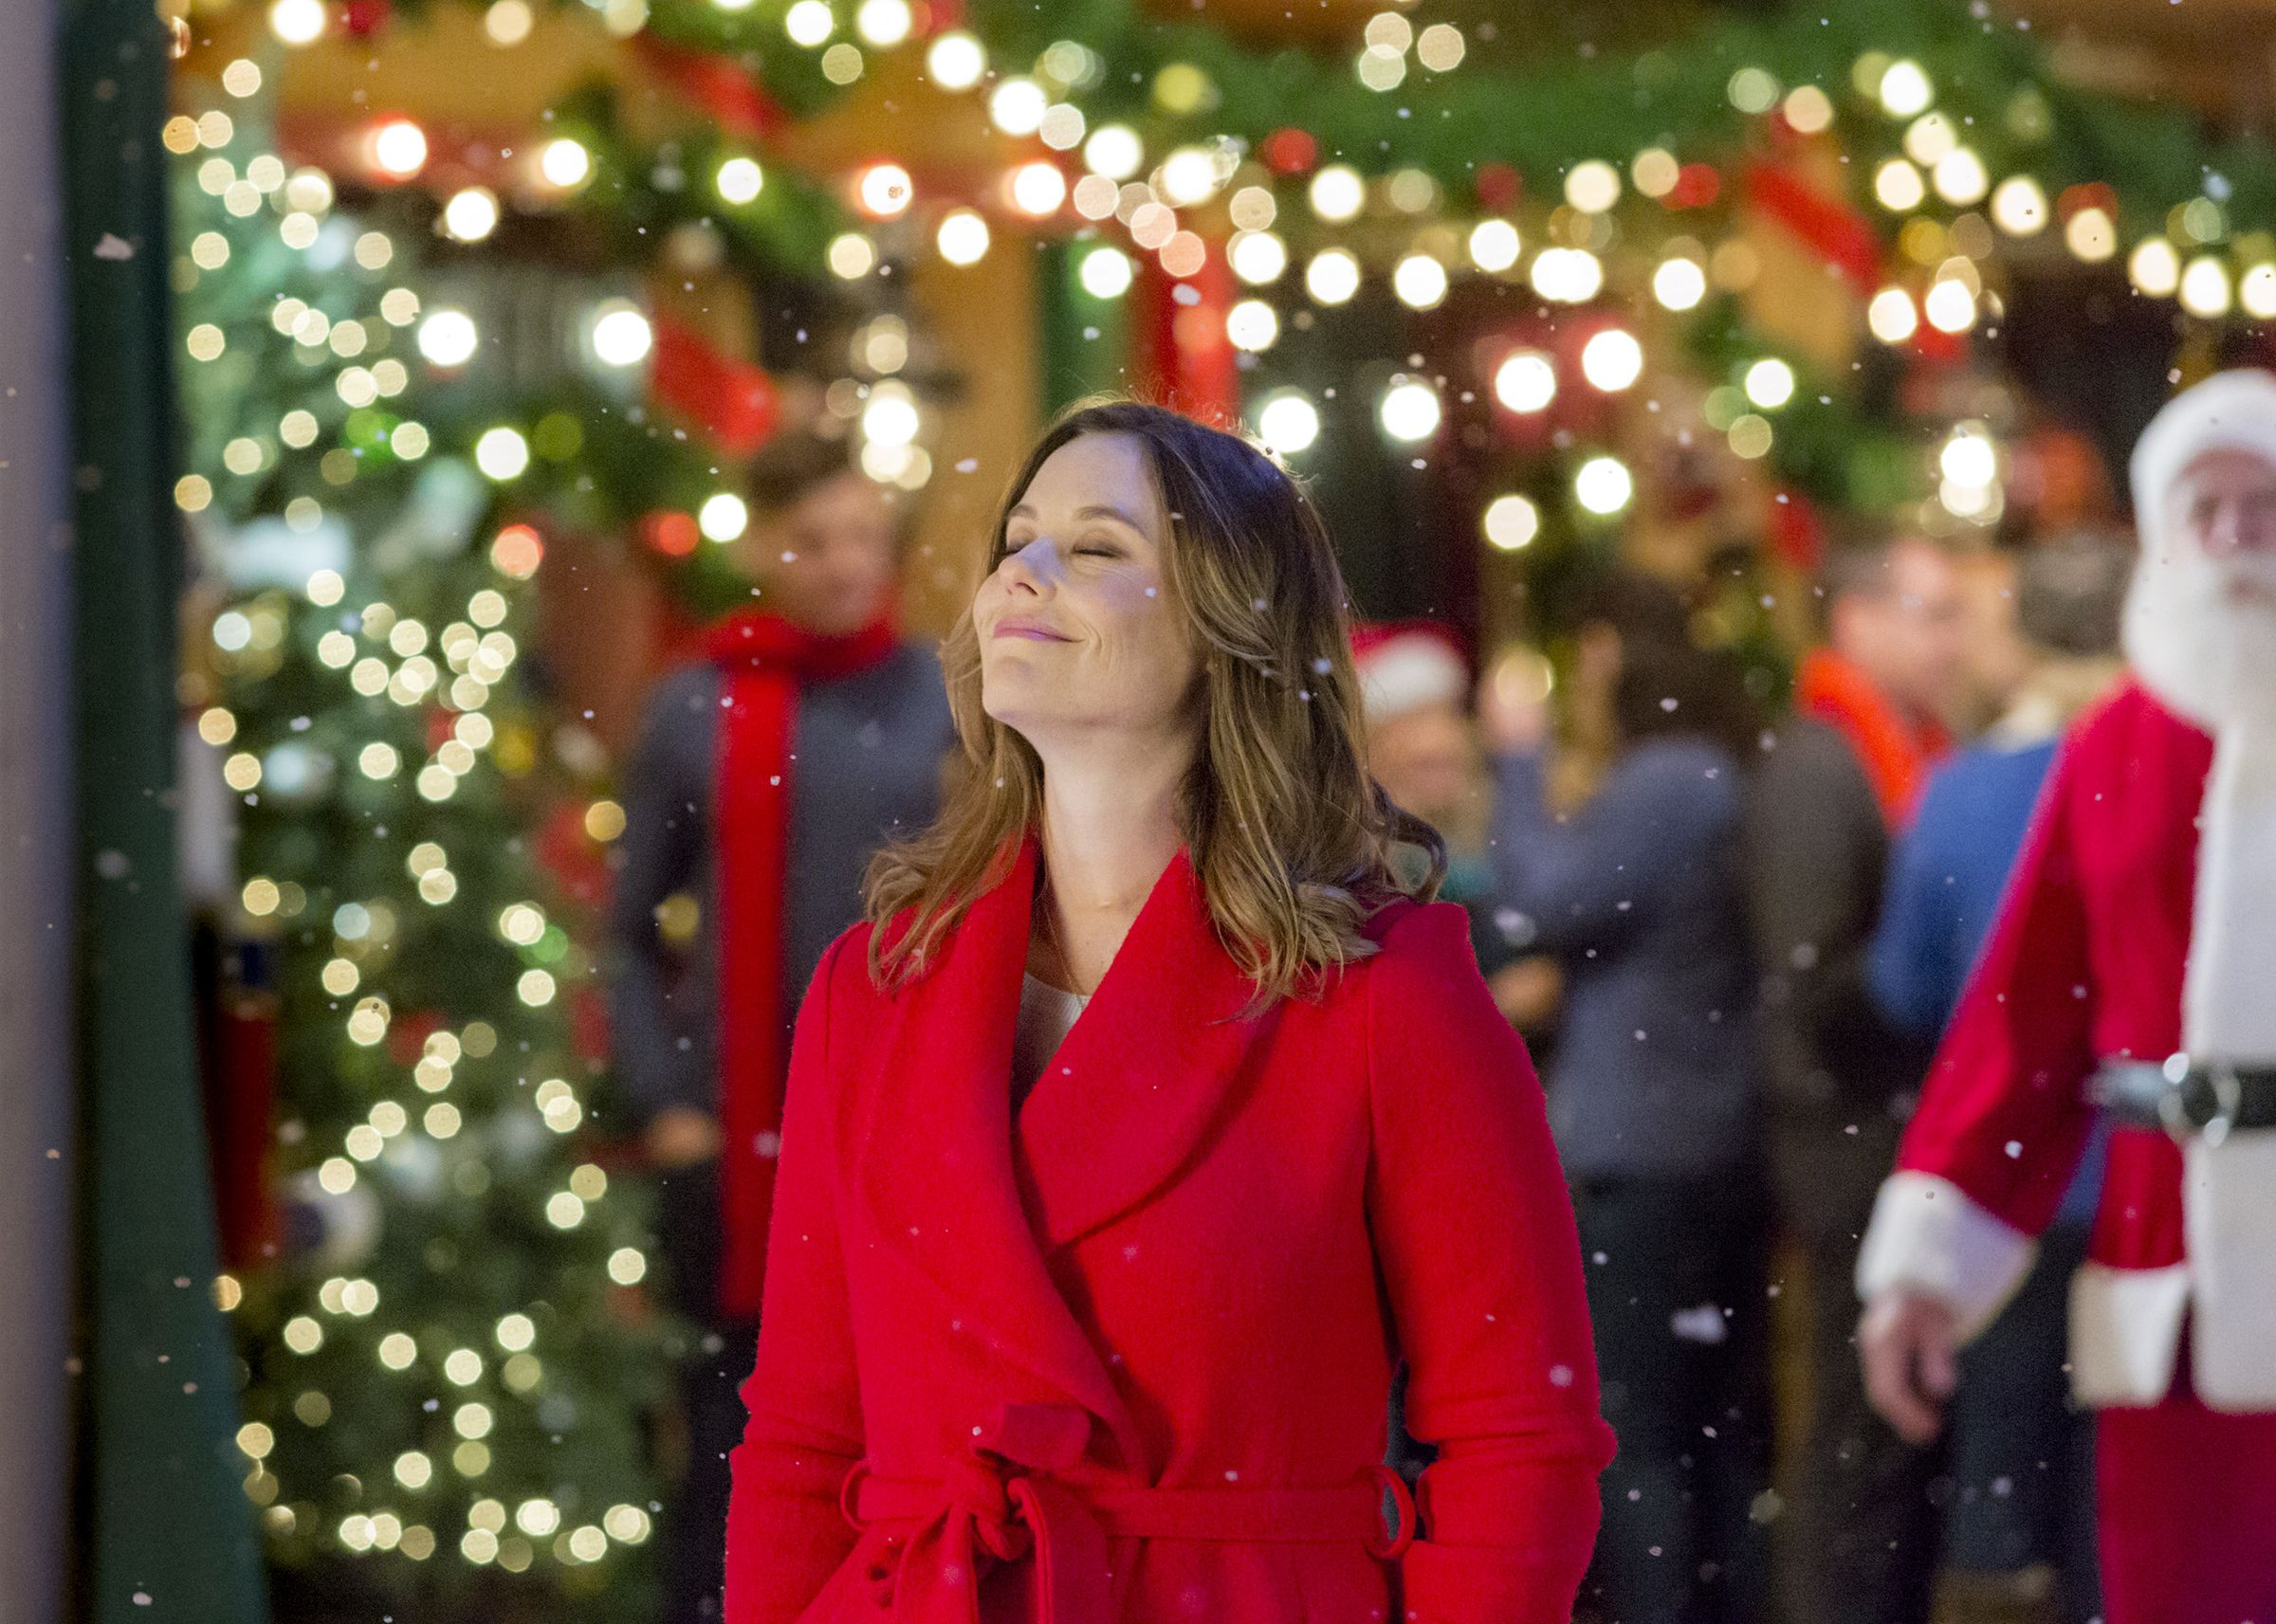 Cast Of A Christmas Kiss.Hallmark Christmas Movies 2019 Schedule Hallmark Christmas